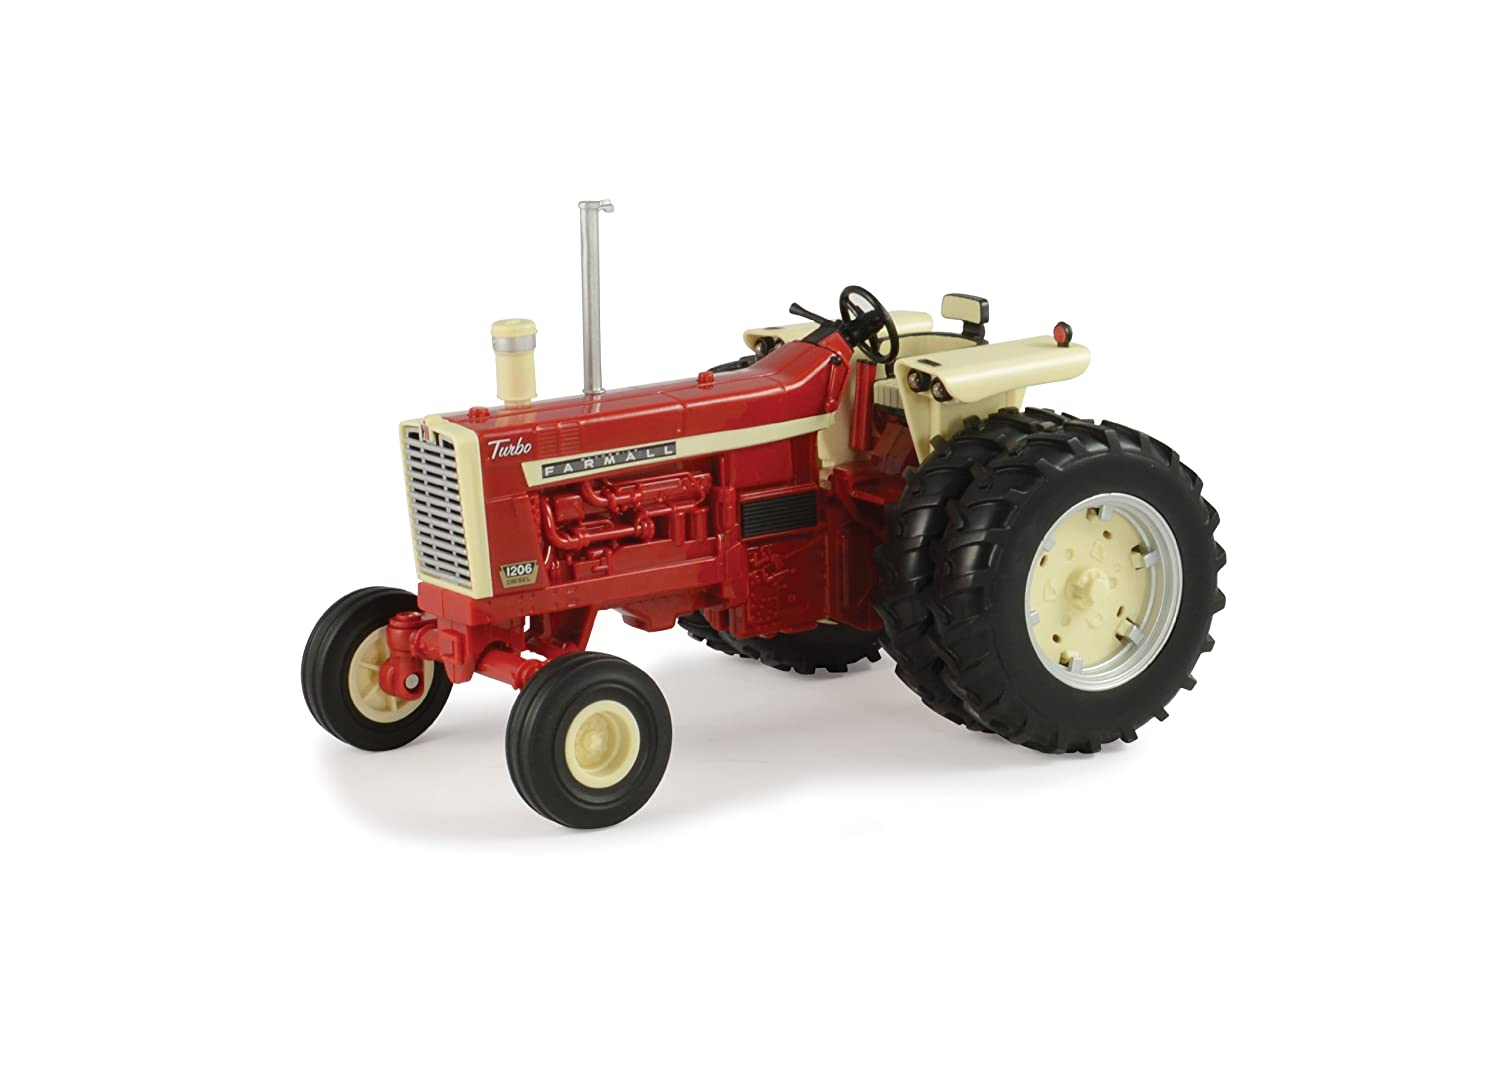 71jg9Jlz9yL._SL1500_ amazon com ertl big farm 1 16 ih 1206 wide front tractor toys Farmall 1206 Tractors On eBay at bayanpartner.co